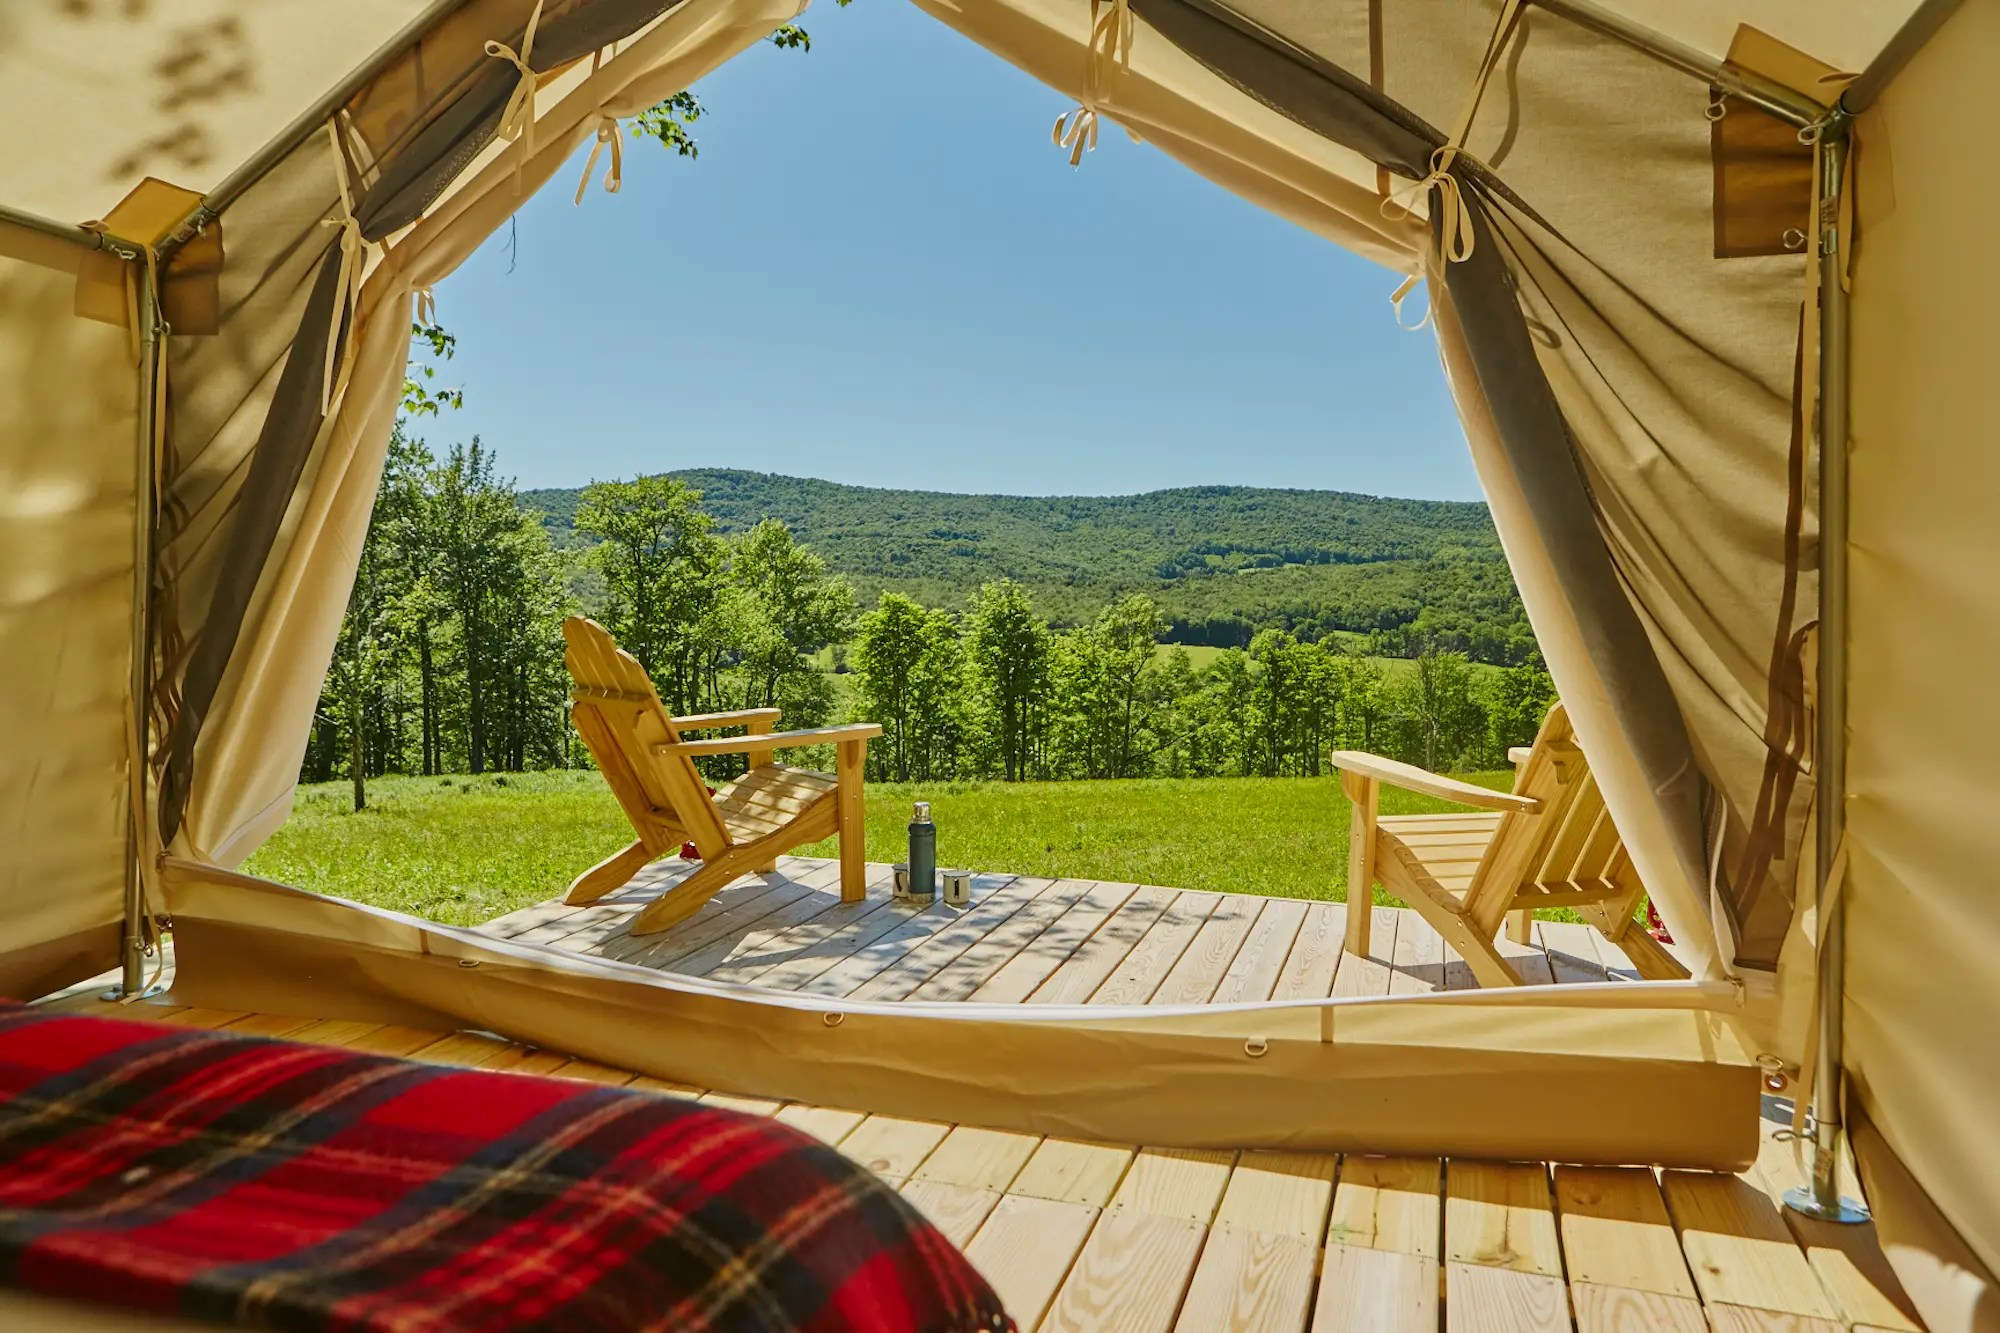 Guests can tie up the door flaps to take in the views of their private campsite.